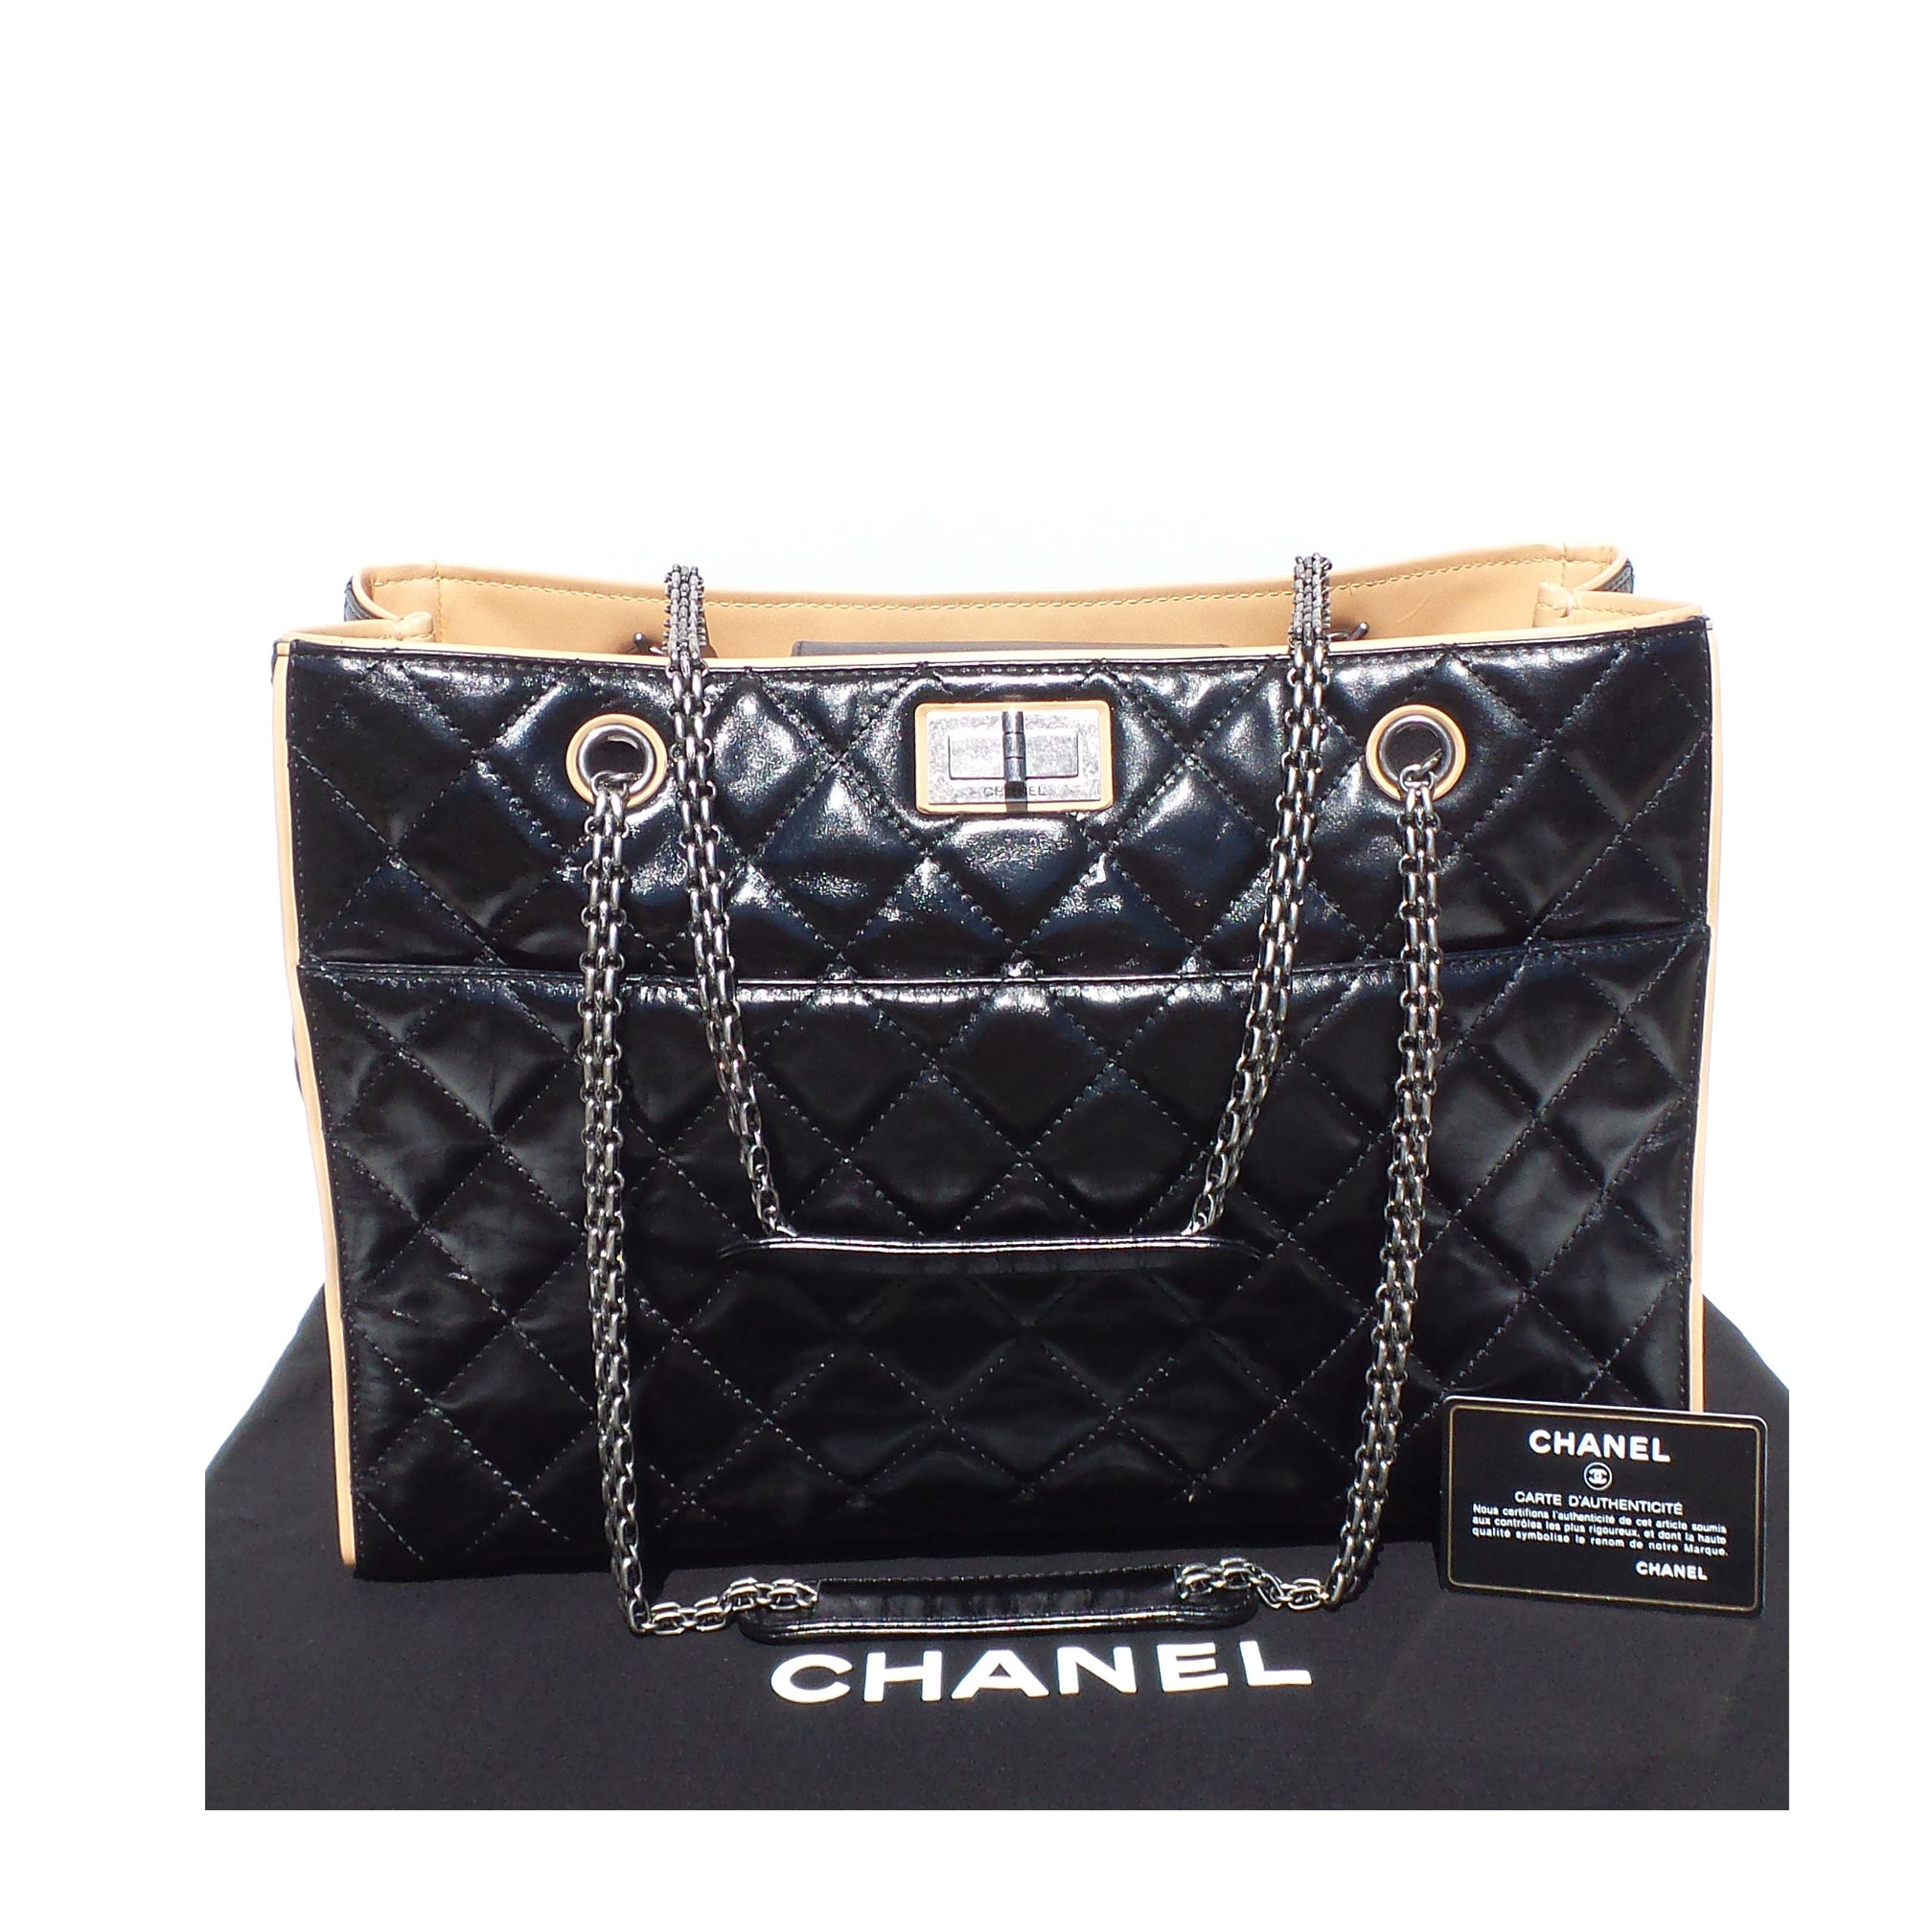 163b94c653f4 CHANEL Black Glazed Quilted Leather Beige 2.55 Reissue Grand Shopping –  Encore Resale.com